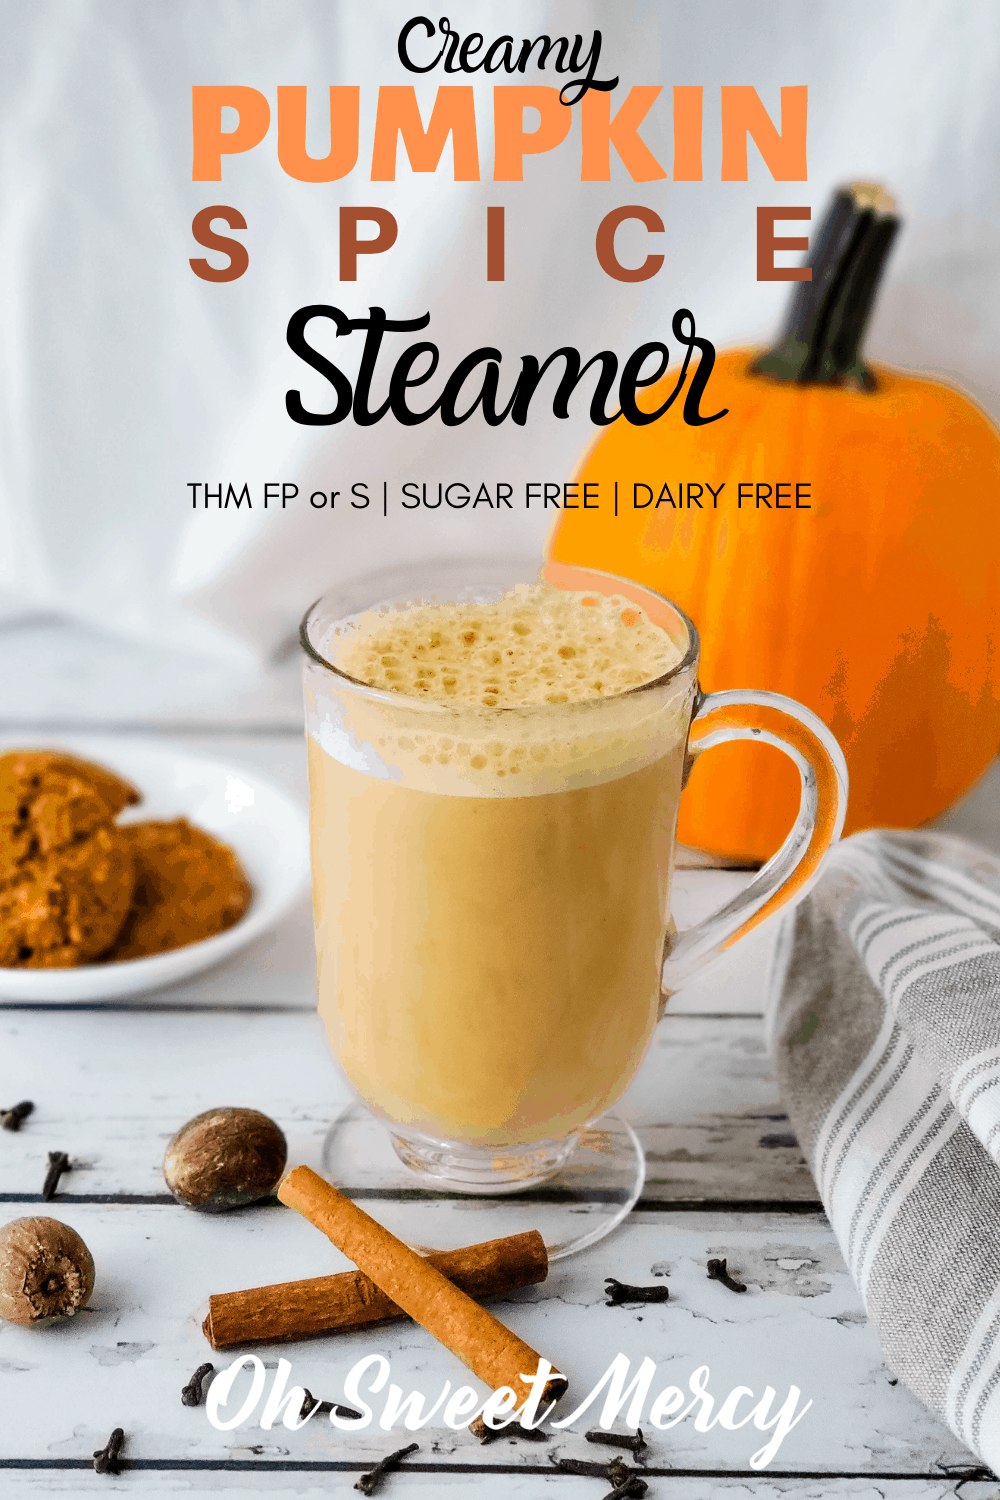 My easy, creamy pumpkin spice steamer is sugar and dairy free, and a low carb, low fat THM FP! Easily make this a THM S by adding MCT oil, coconut oil, or heavy cream if desired. So cozy and soothing and perfect for cold, fall and winter days. #thm #pumpkinspice #steamers #fallbeverages #lowfat #lowcarb #sugarfree @ohsweetmercy